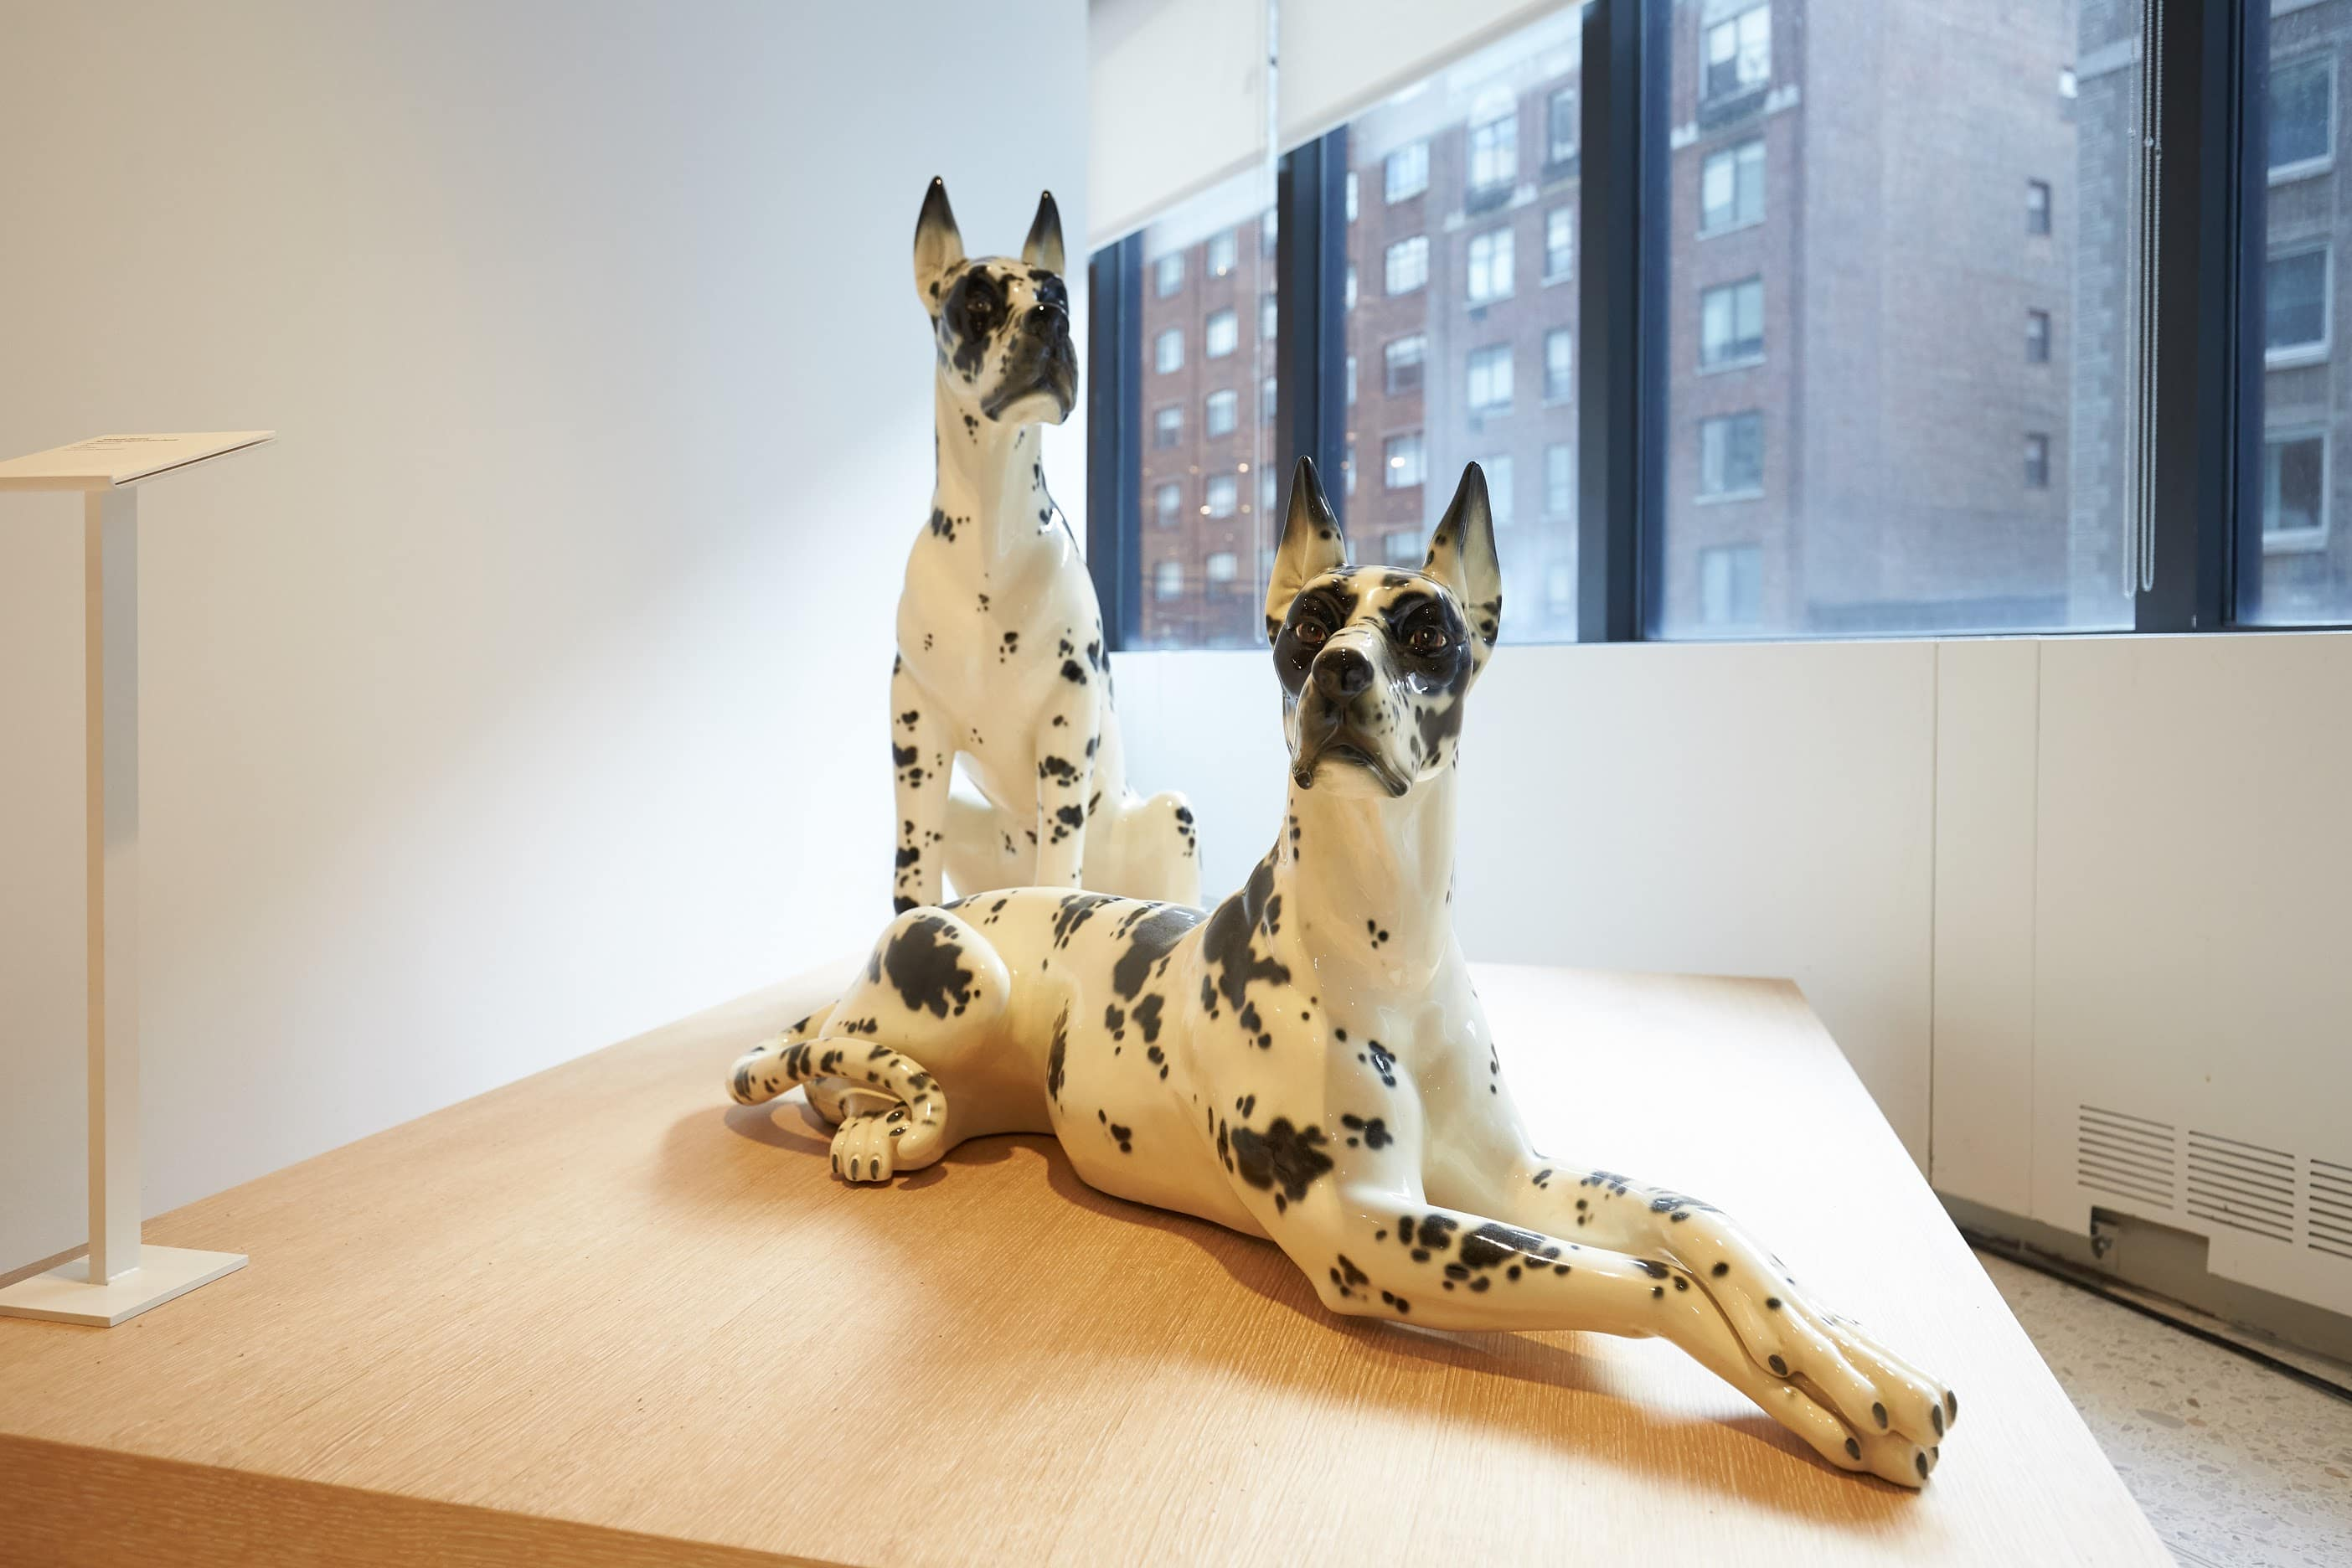 The American Kennel Club Museum is now open in New York City